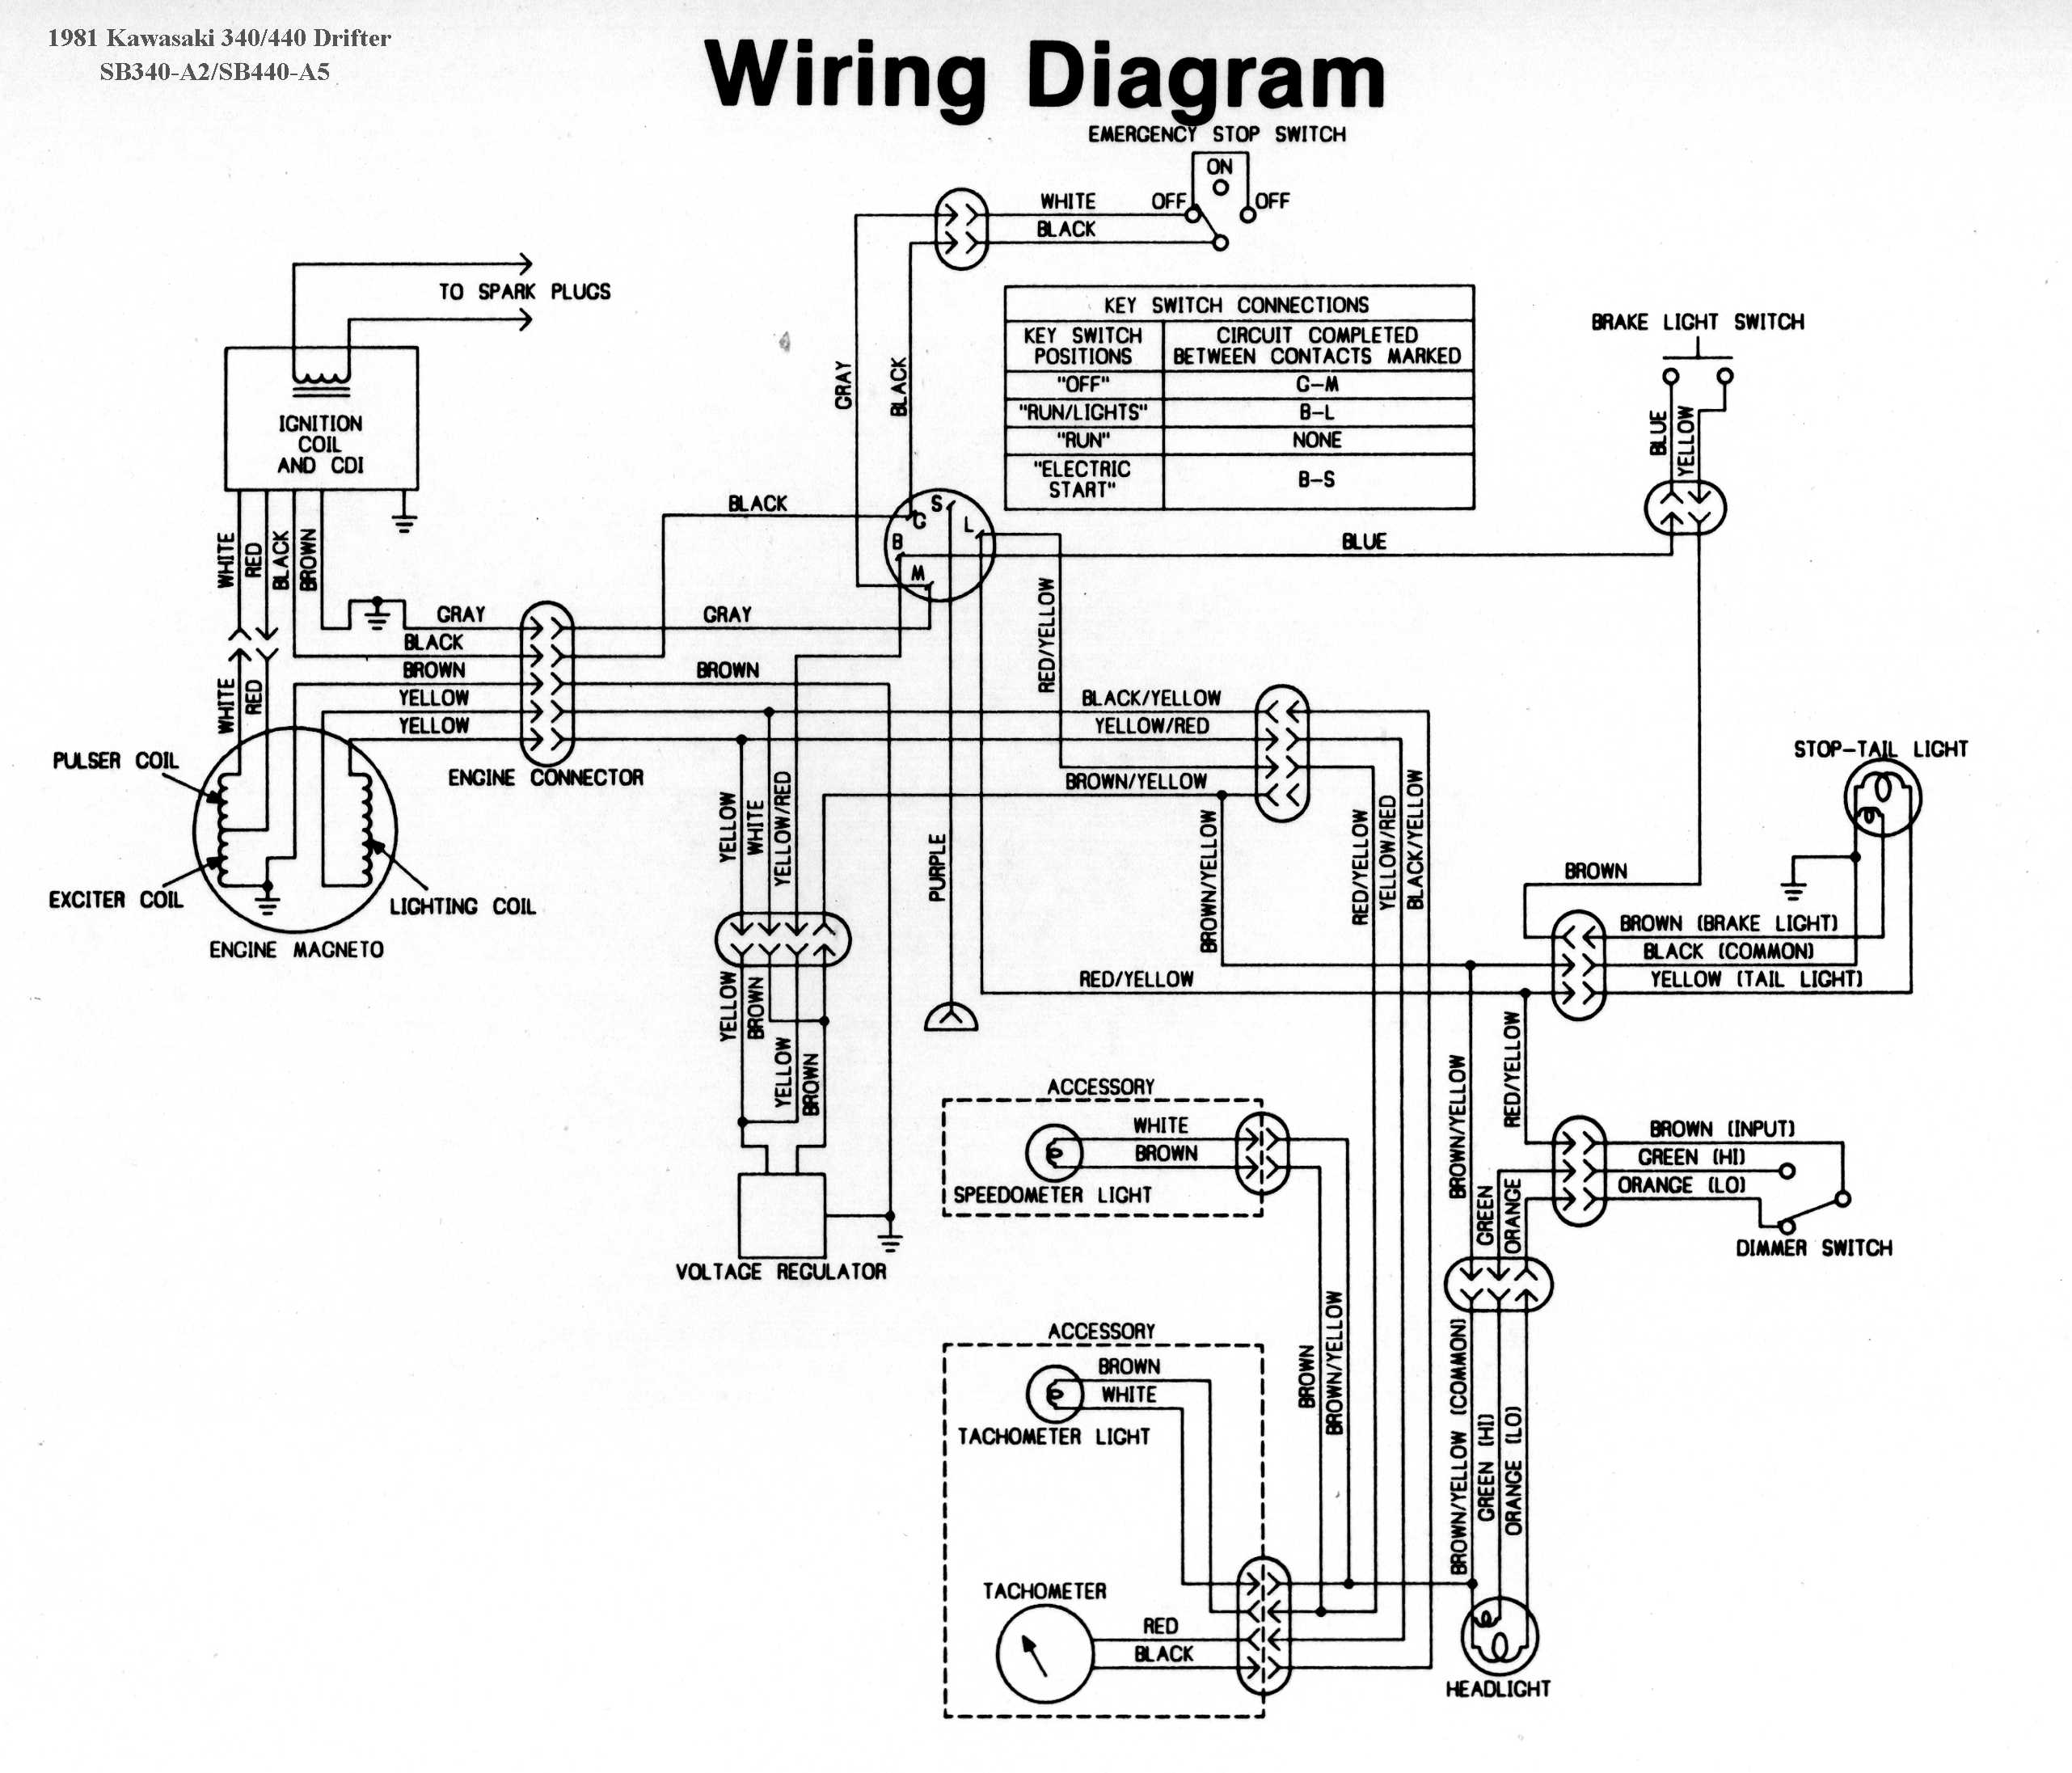 kawasaki ltd 550 wiring diagram wiring diagram img  kawasaki ltd 550 wiring diagram #10